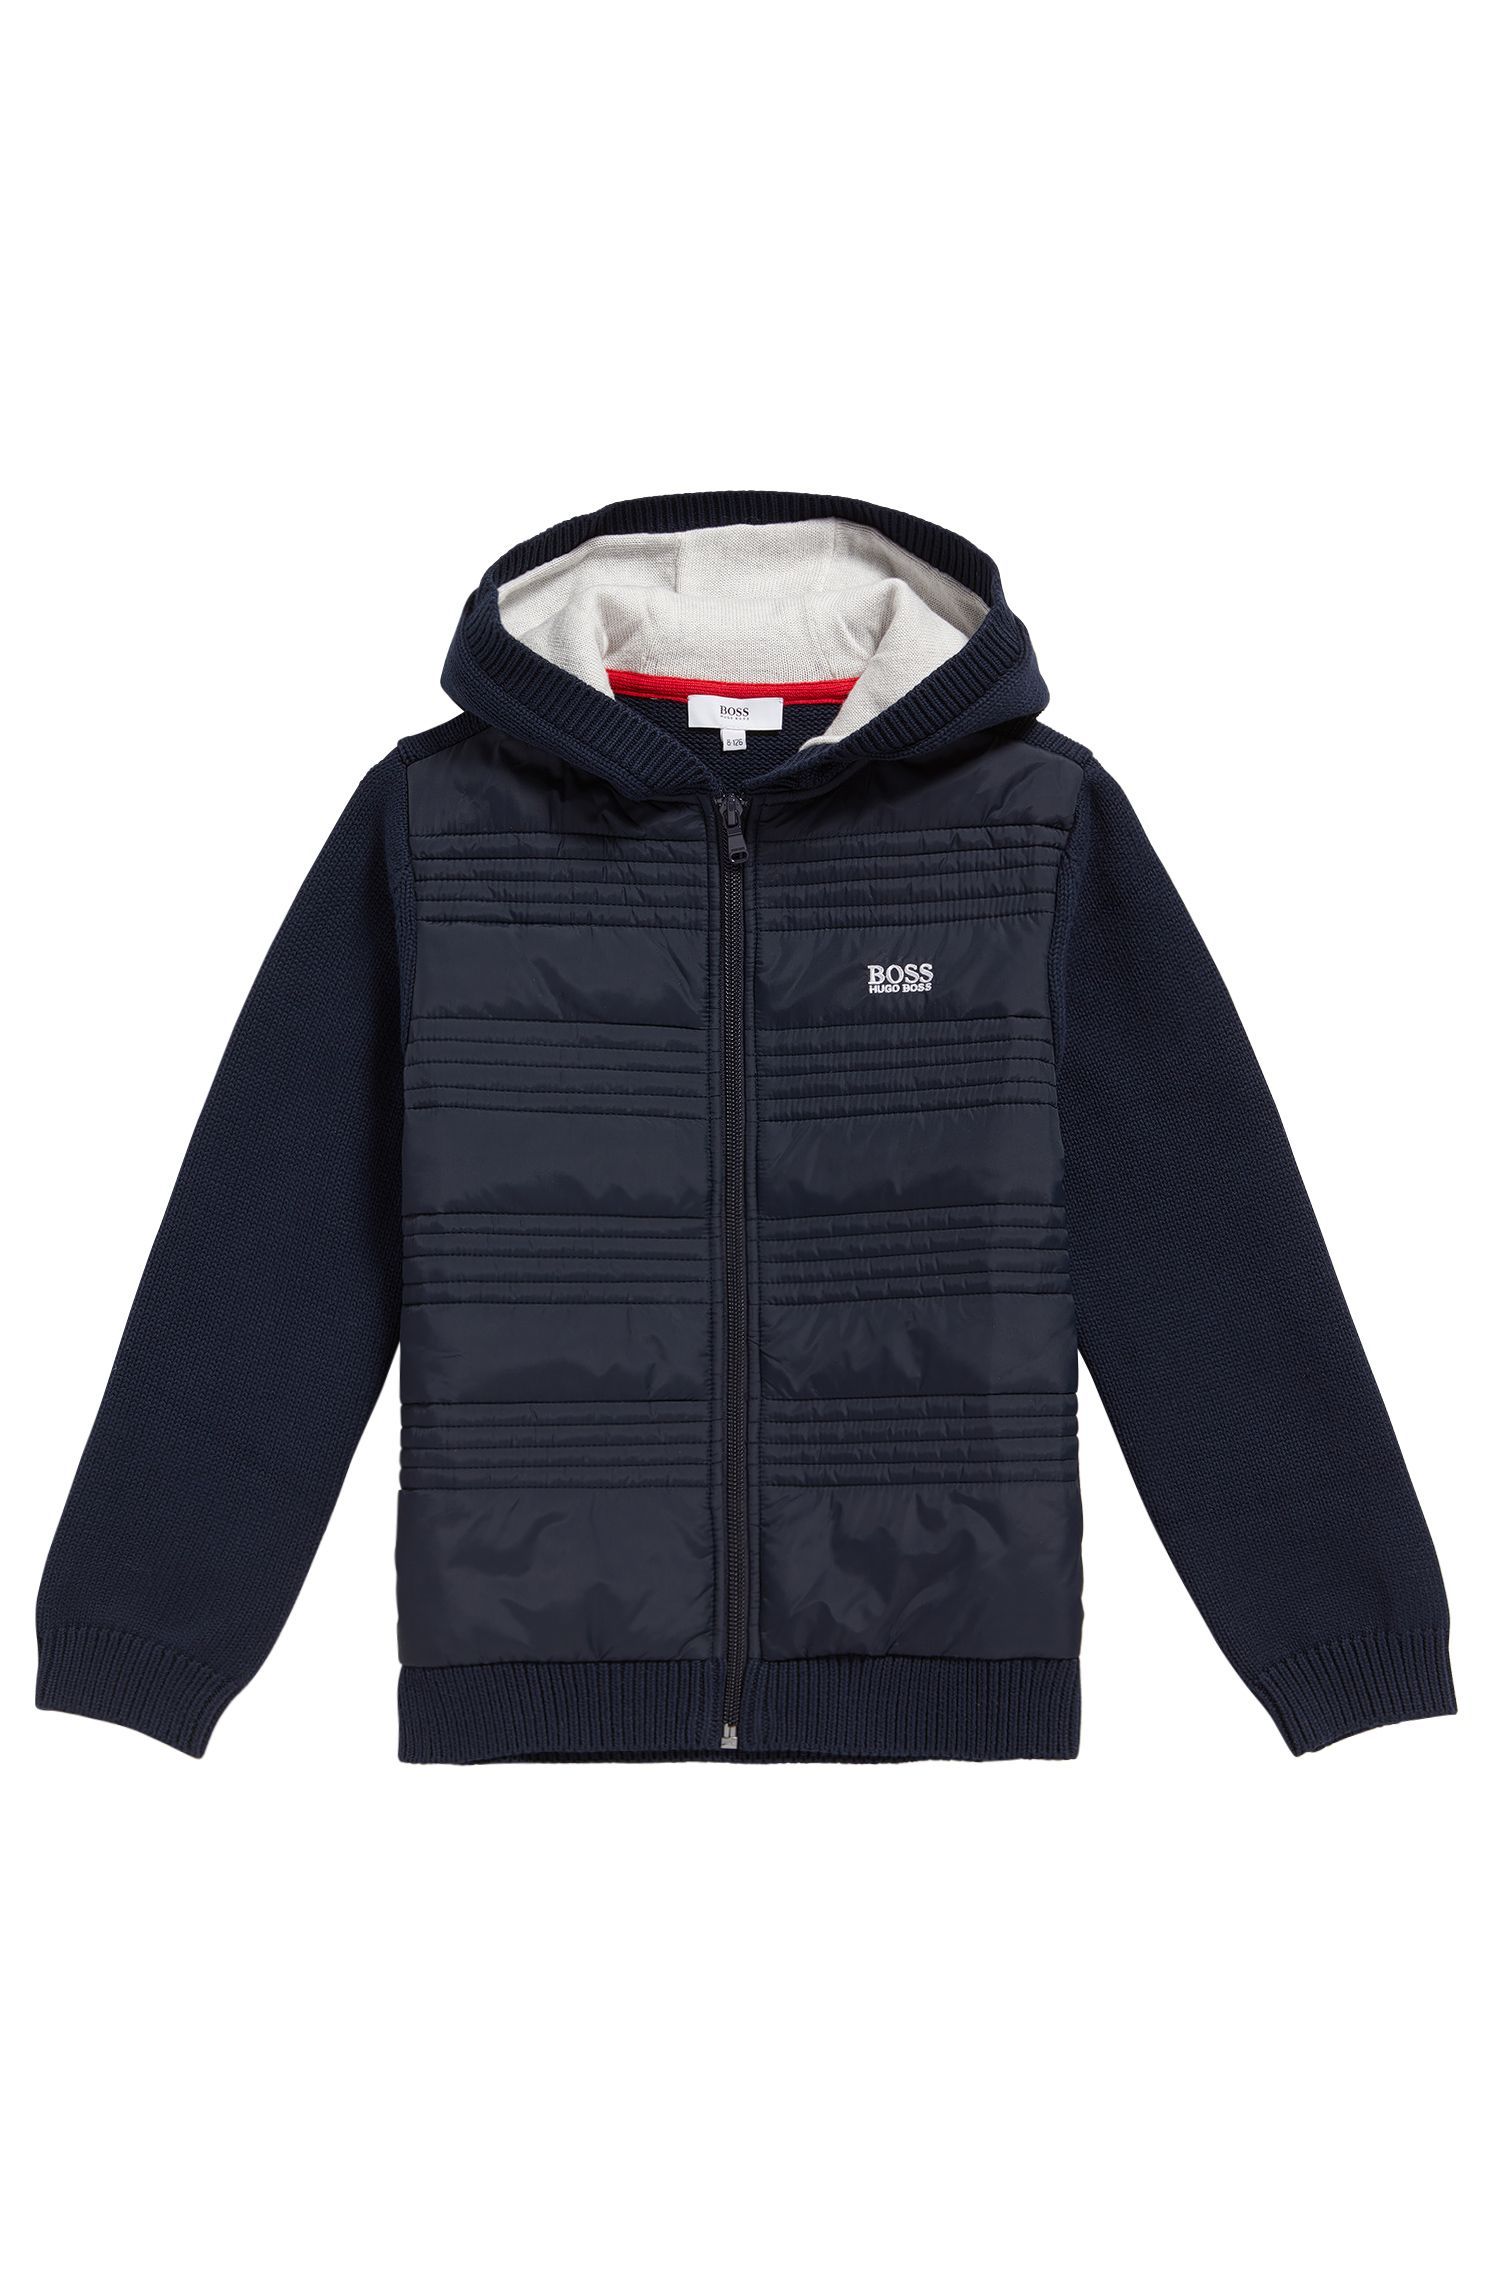 'J25A23' | Boys Cotton Woven Hooded Sweater Jacket